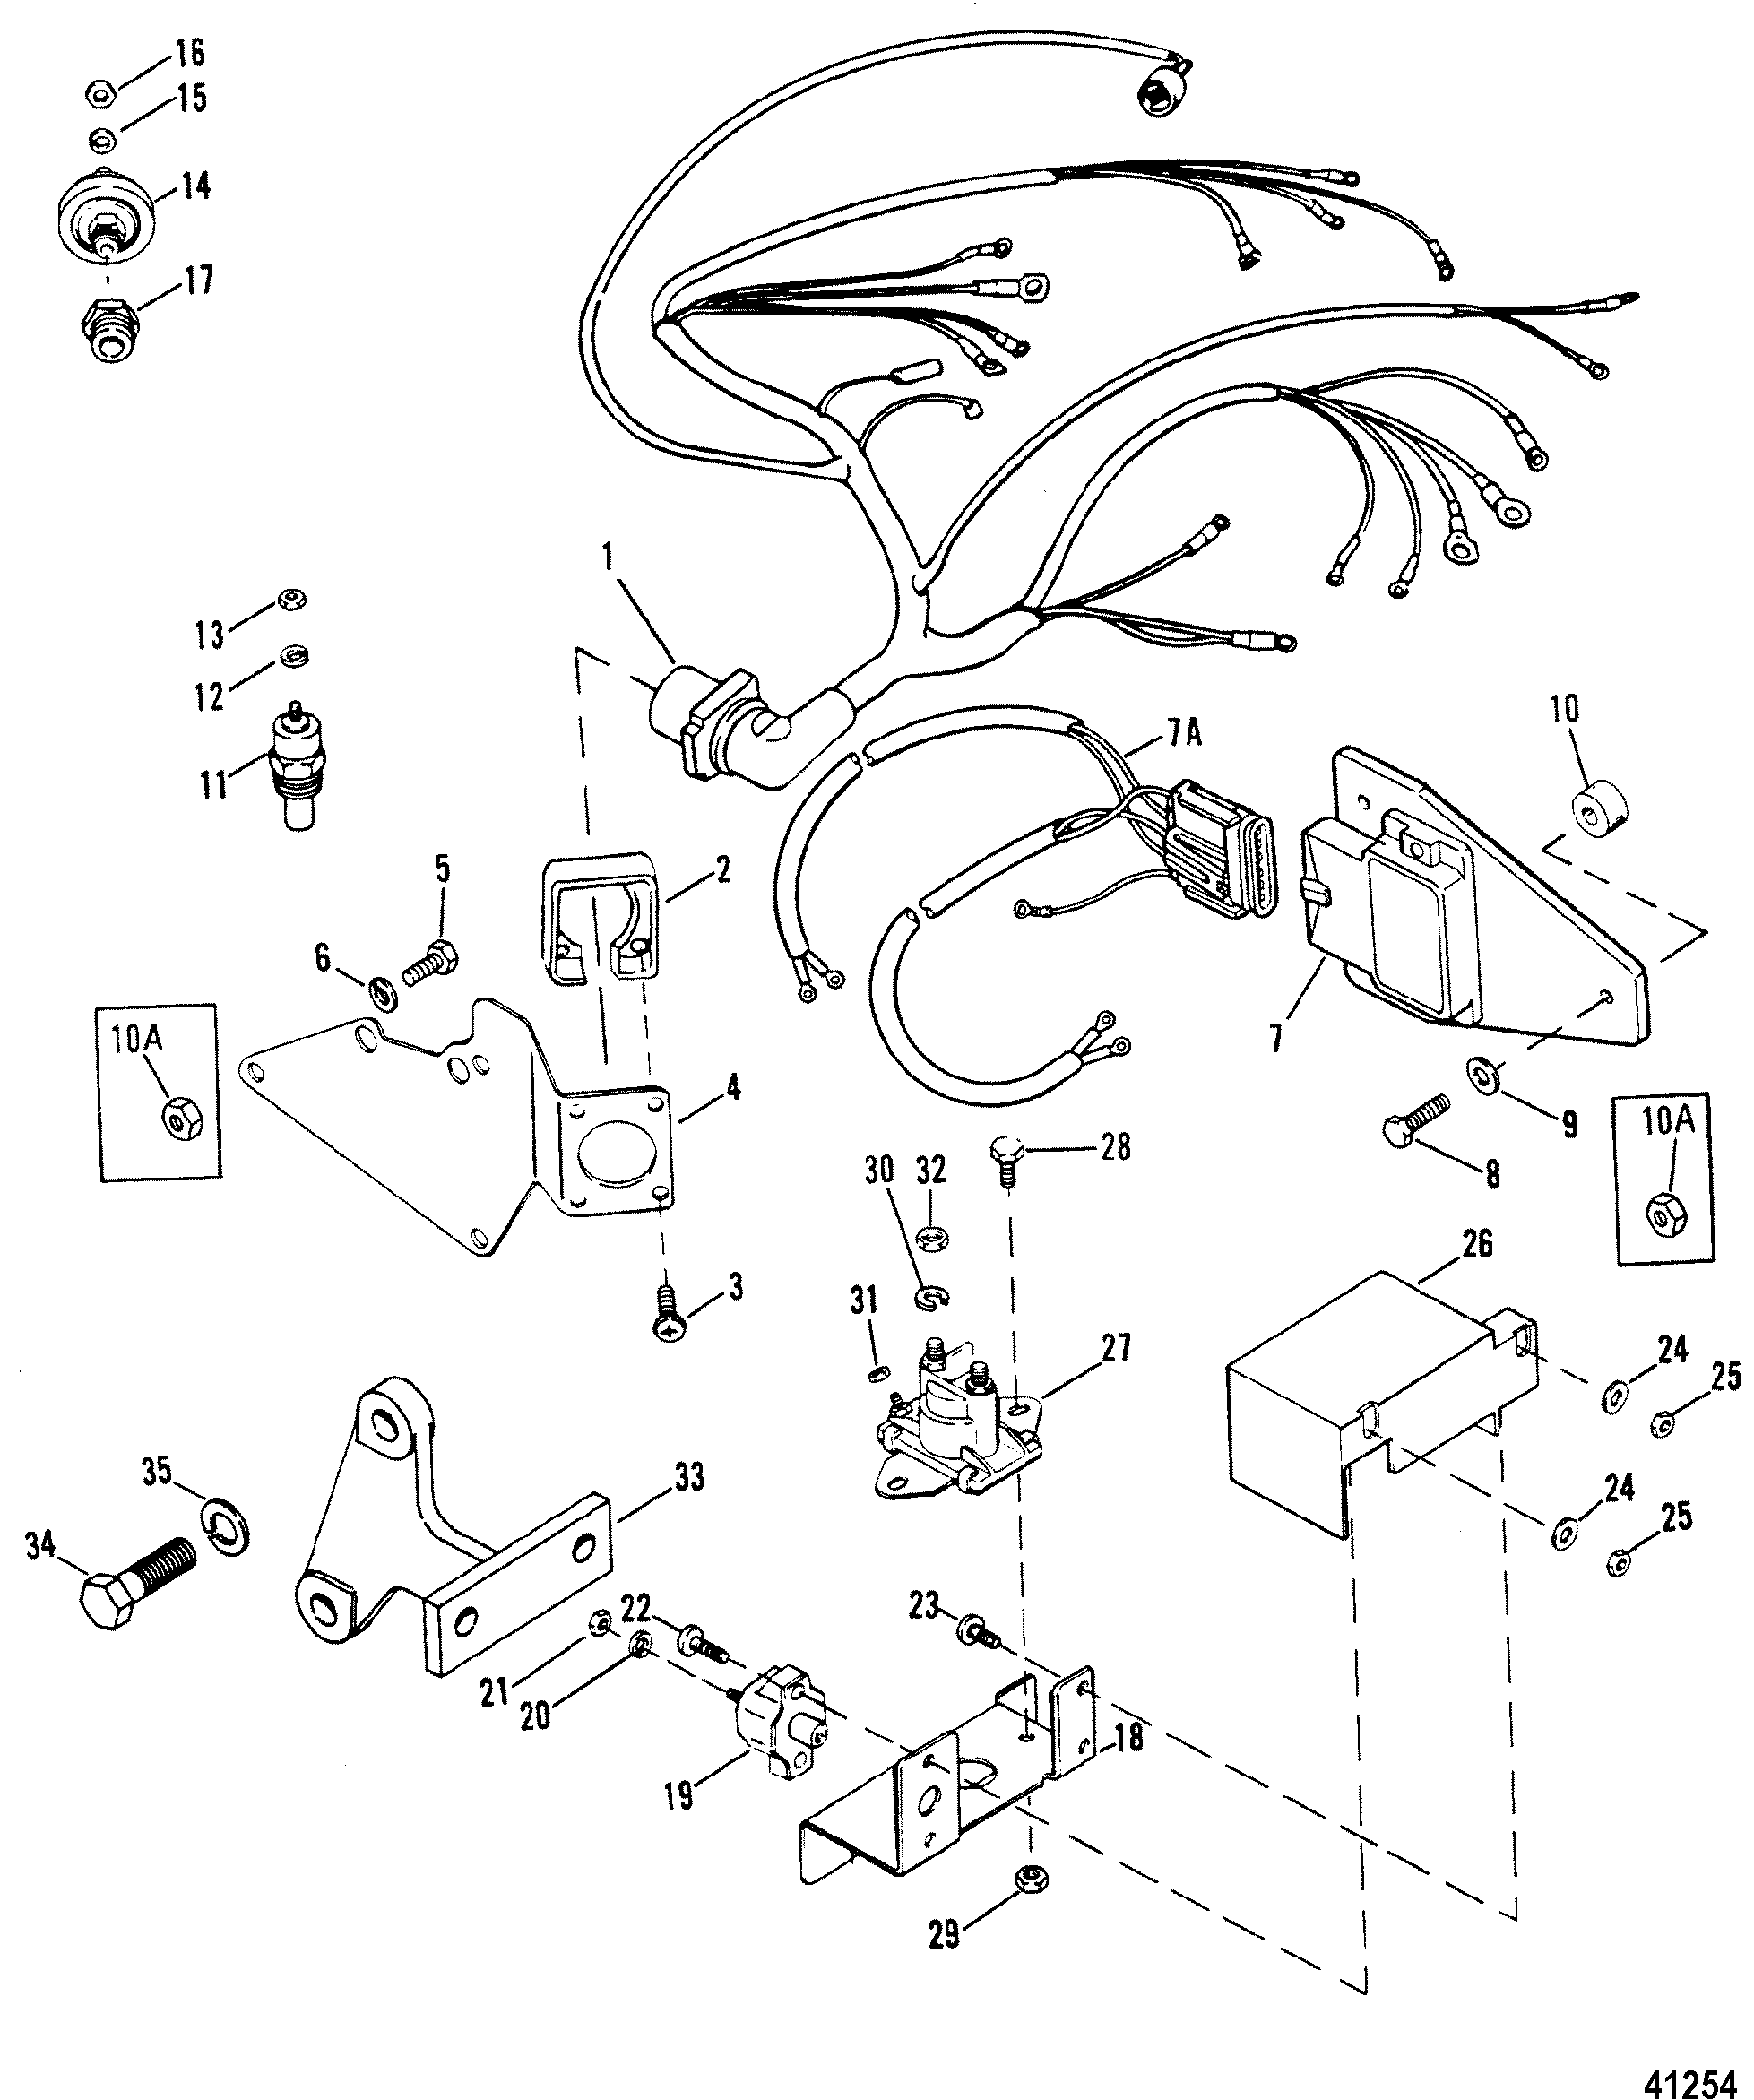 Wiring harness electrical ignition